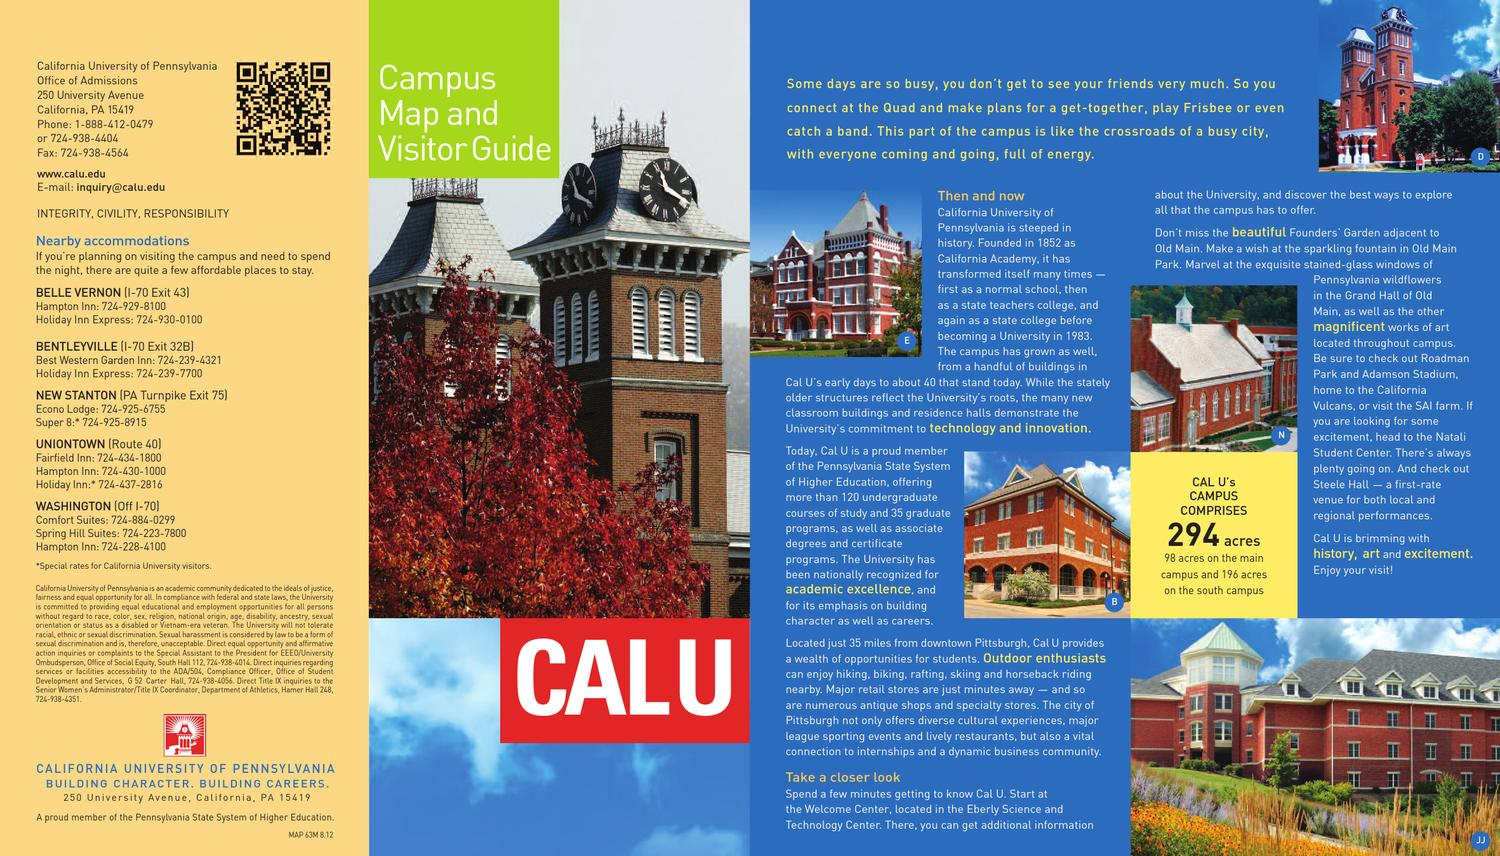 California University Of Pa Campus Map.California University Pennsylvania Campus Map